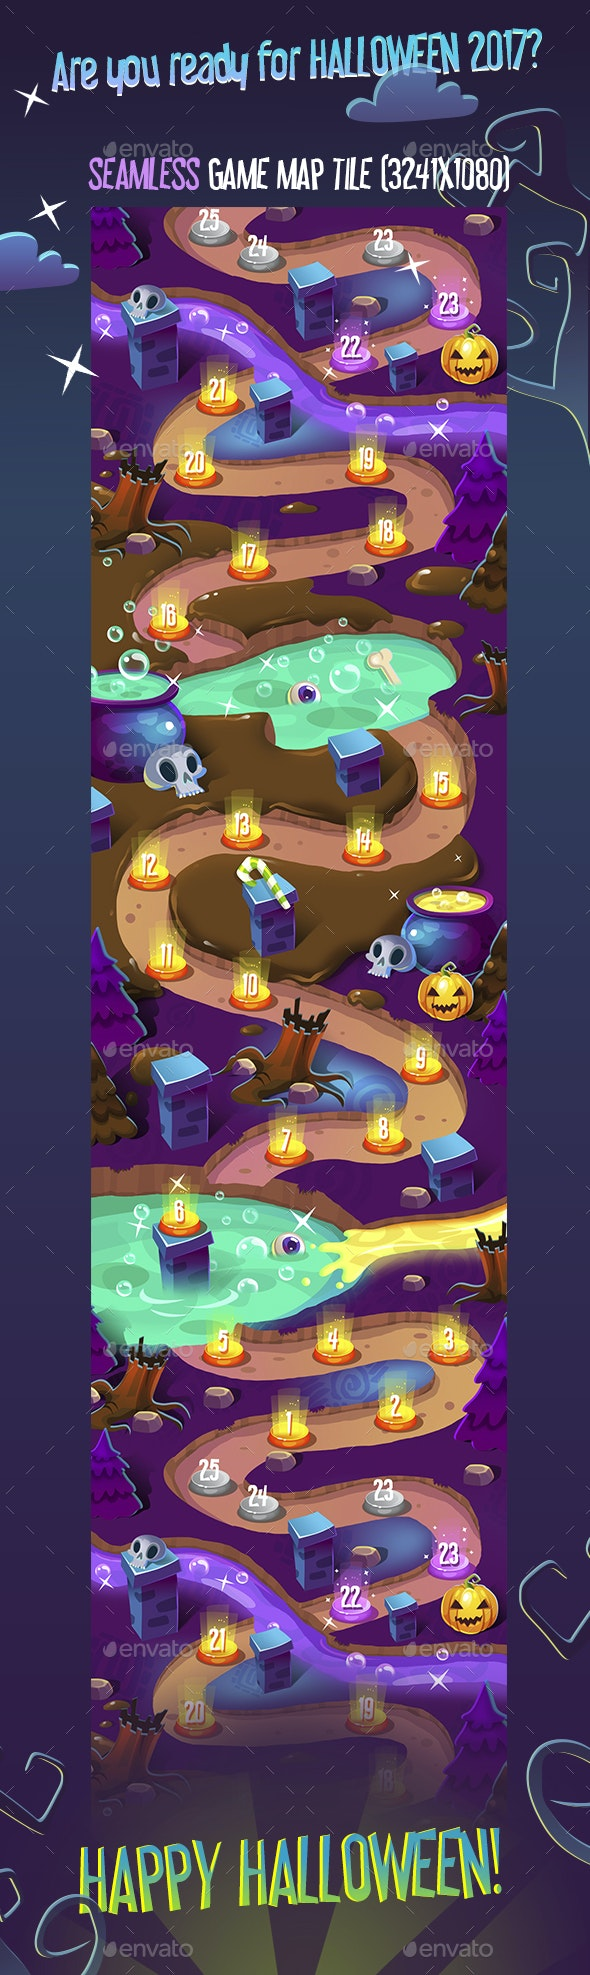 Seamless Halloween Dark Game Map - Tilesets Game Assets